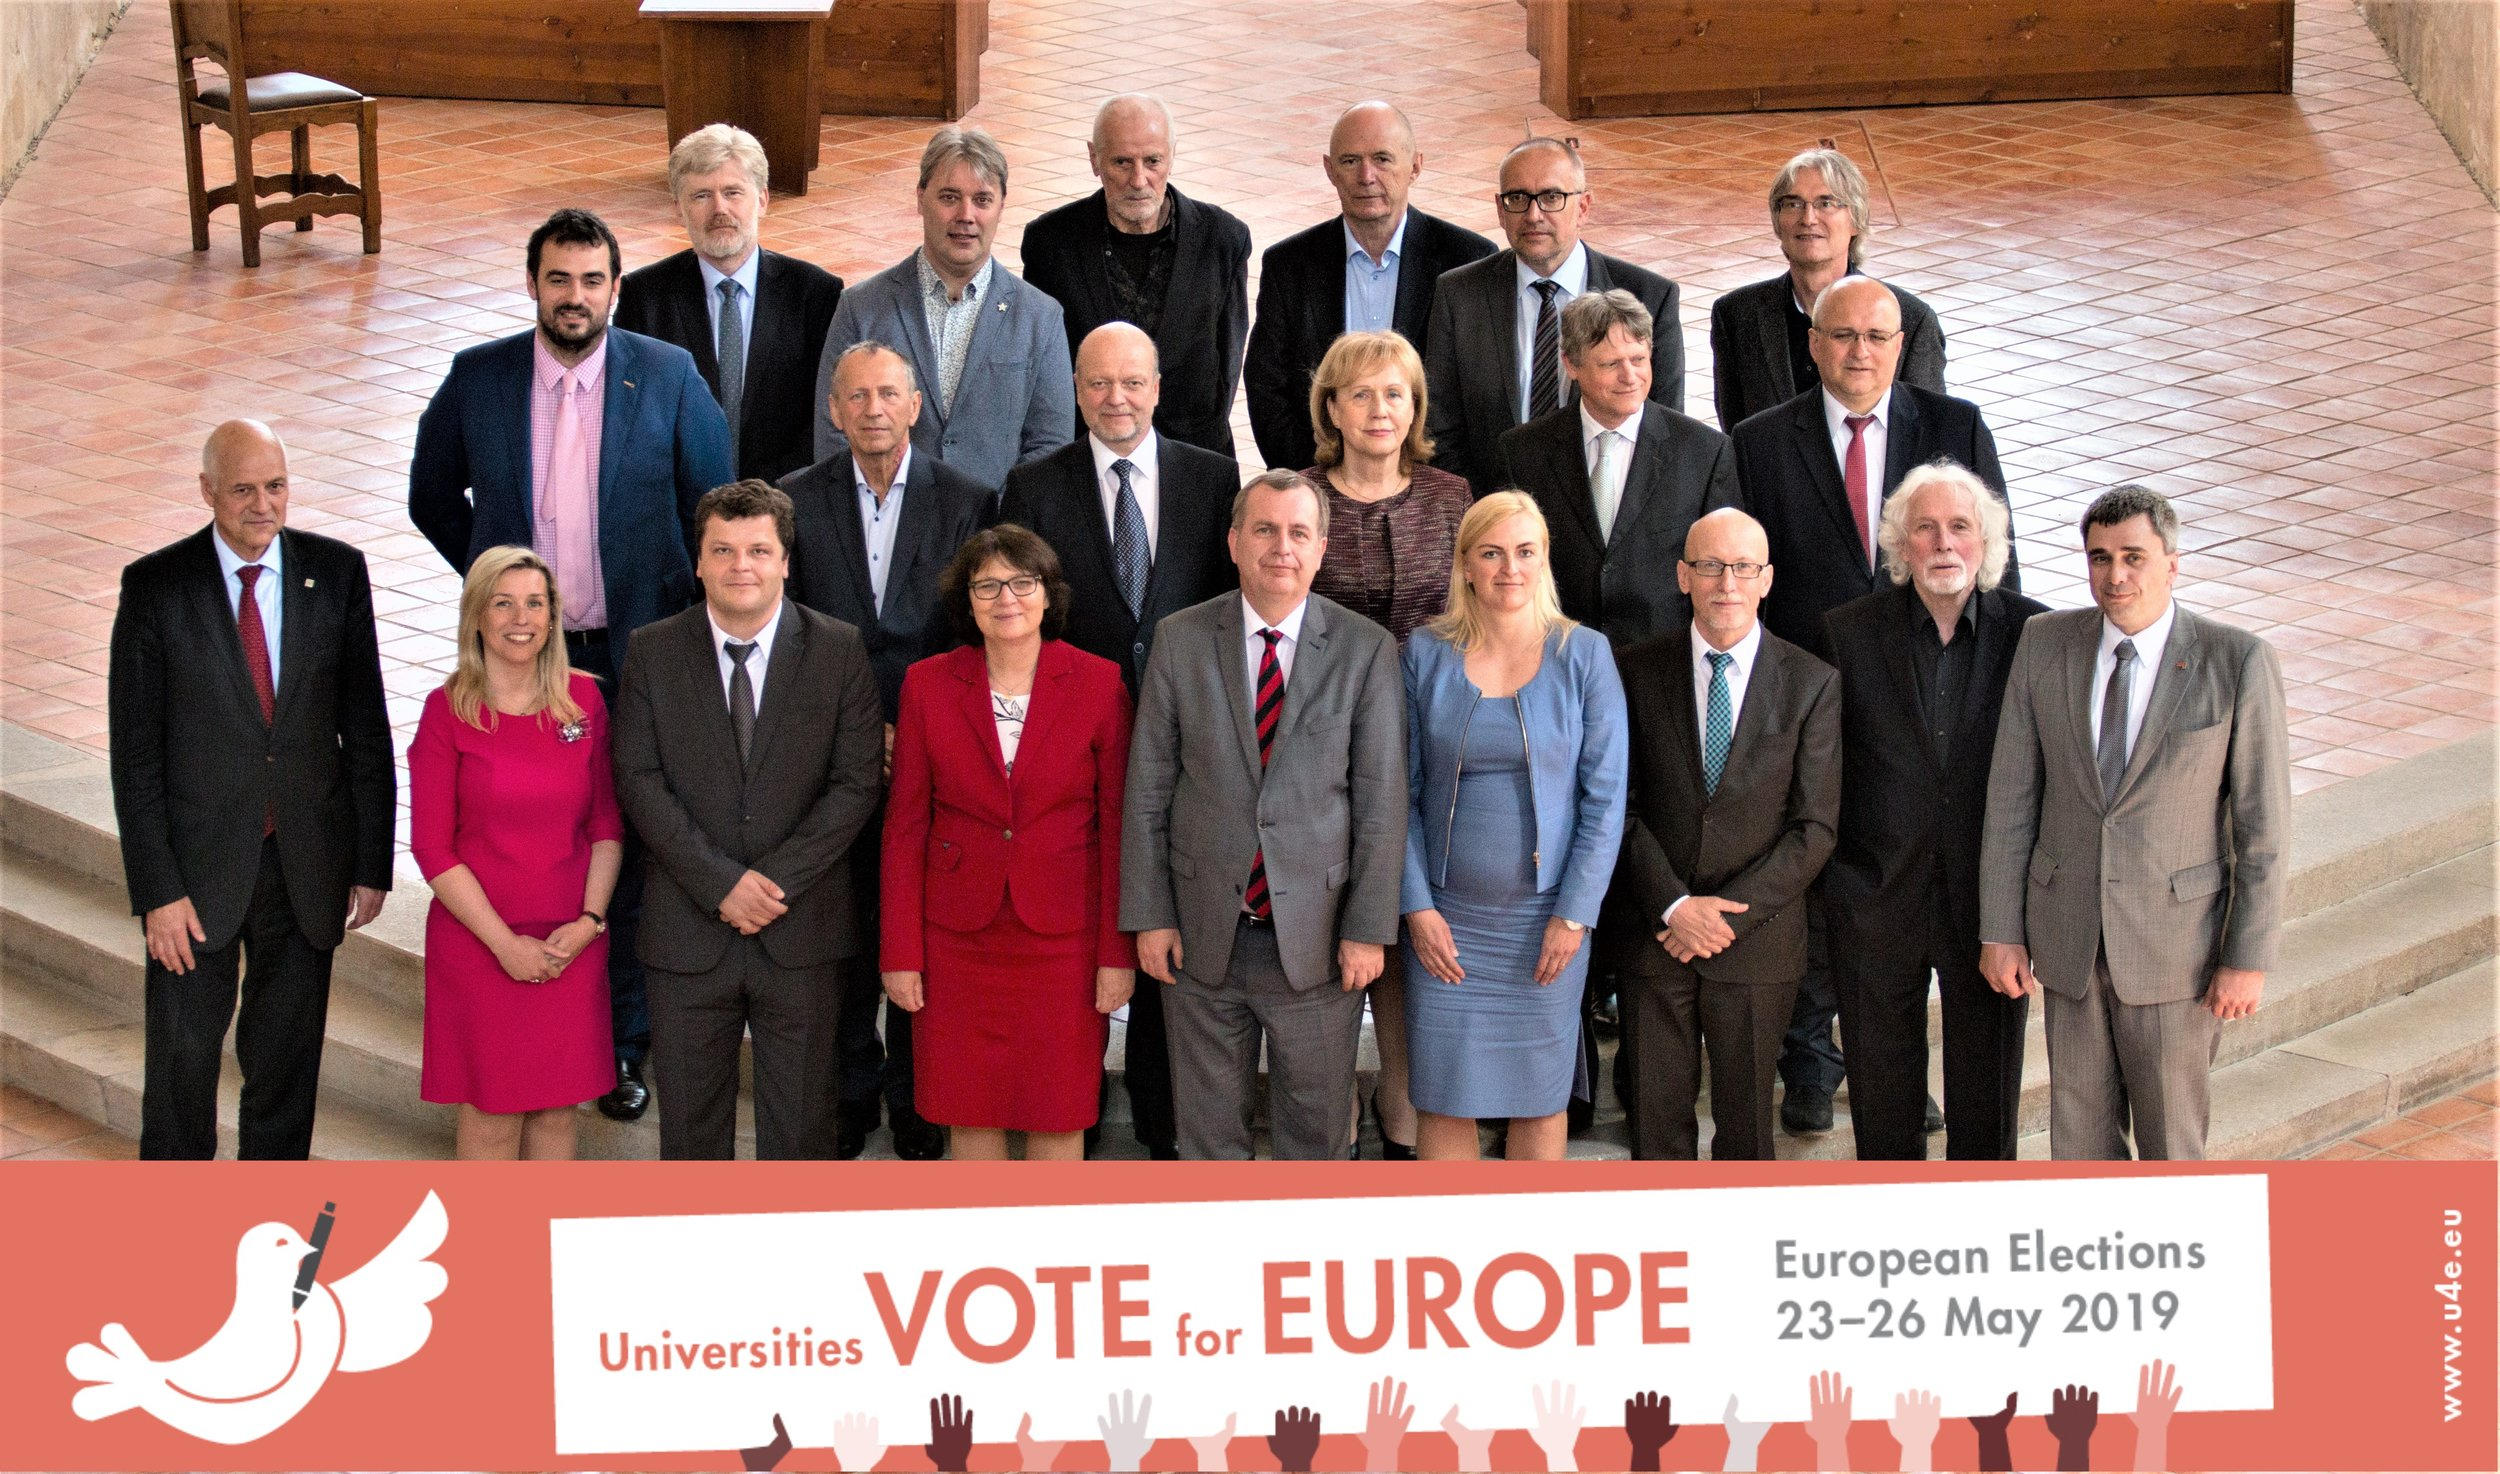 [CZ] STATEMENT OF THE CZECH RECTORS CONFERENCE ON THE EUROPEAN PARLIAMENT ELECTIONS - Jihlava, 25 April 2019